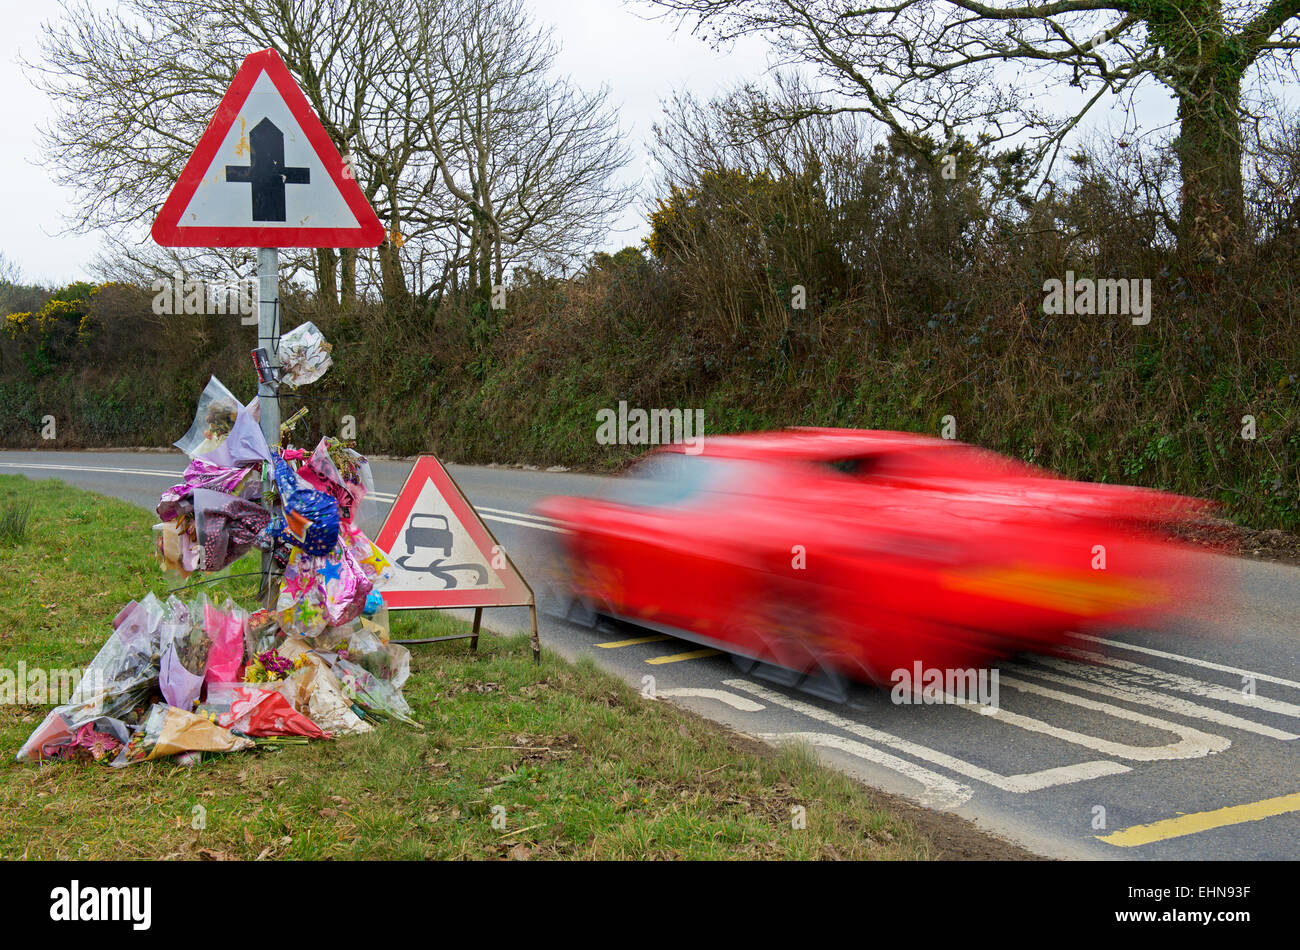 Fatal Car Accident Stock Photos & Fatal Car Accident Stock Images